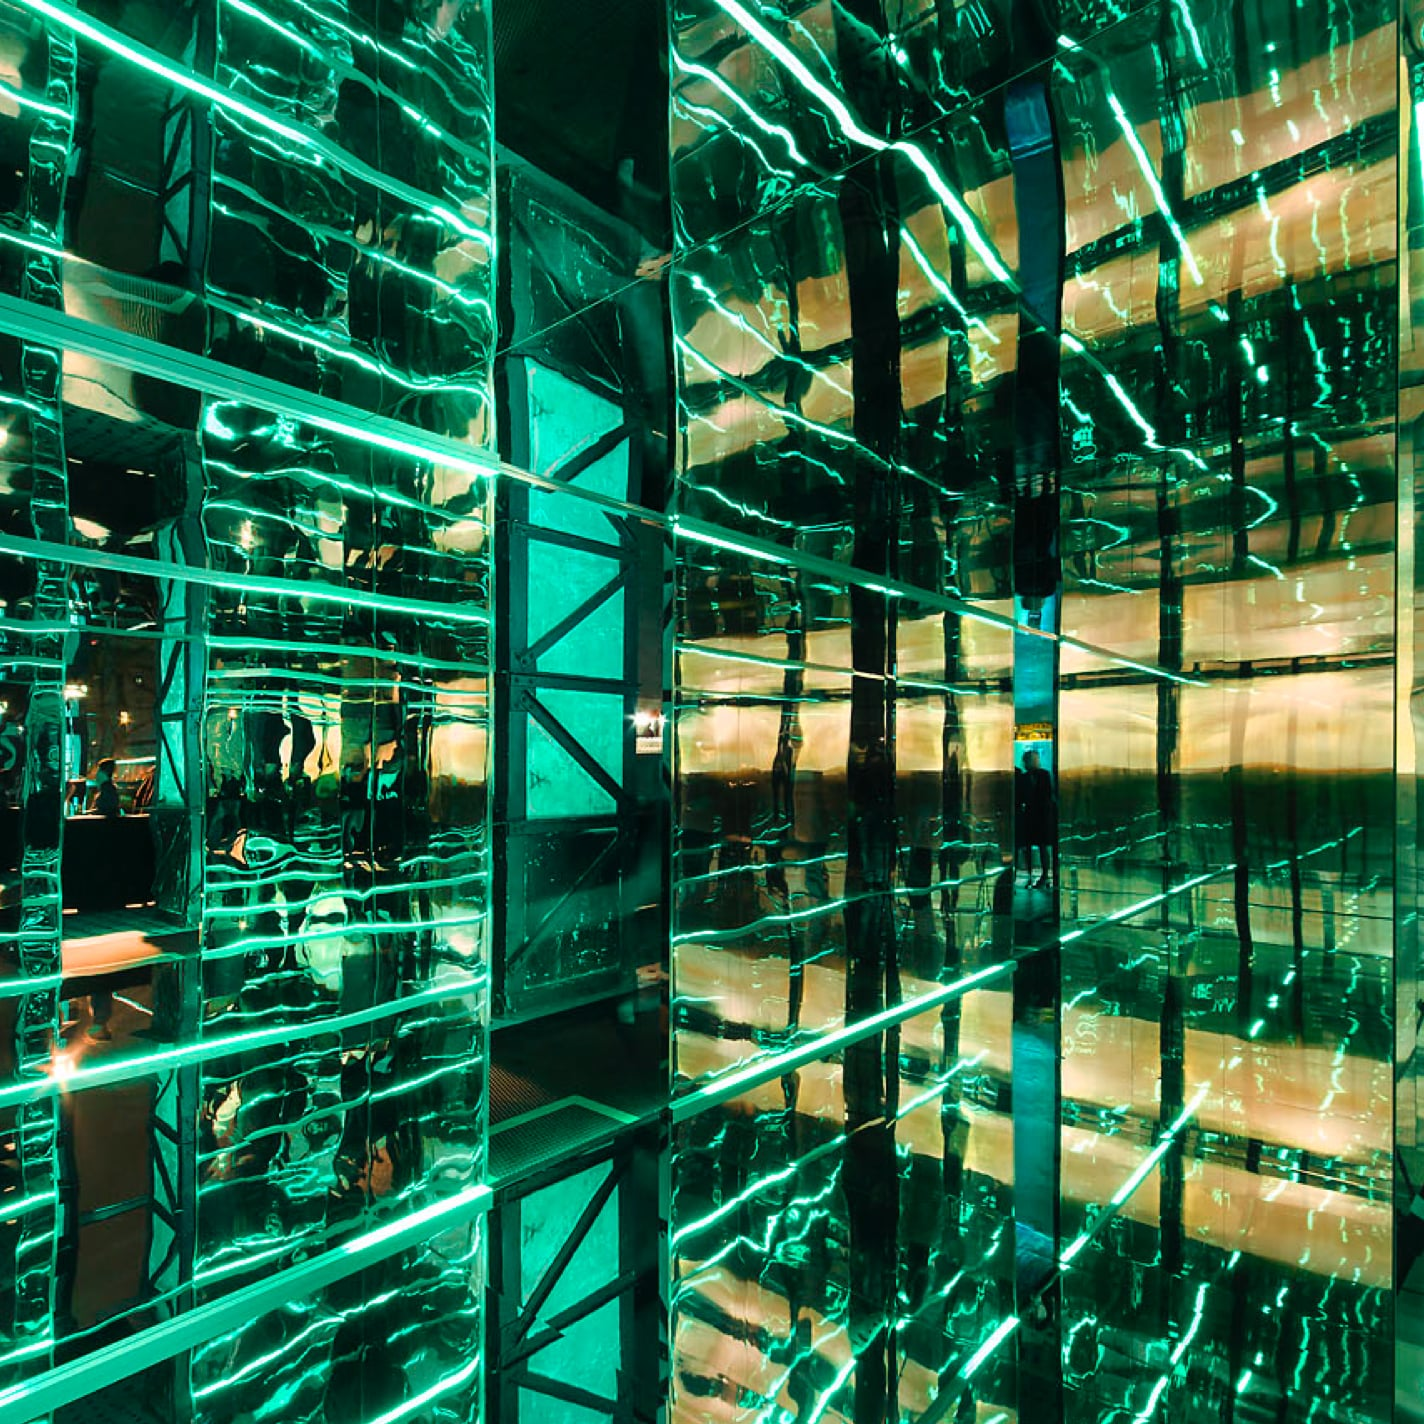 Kenza creation launch of Hewlett-Packard Enterprise EMEA immersive brand and customer experience in space infinity room 1